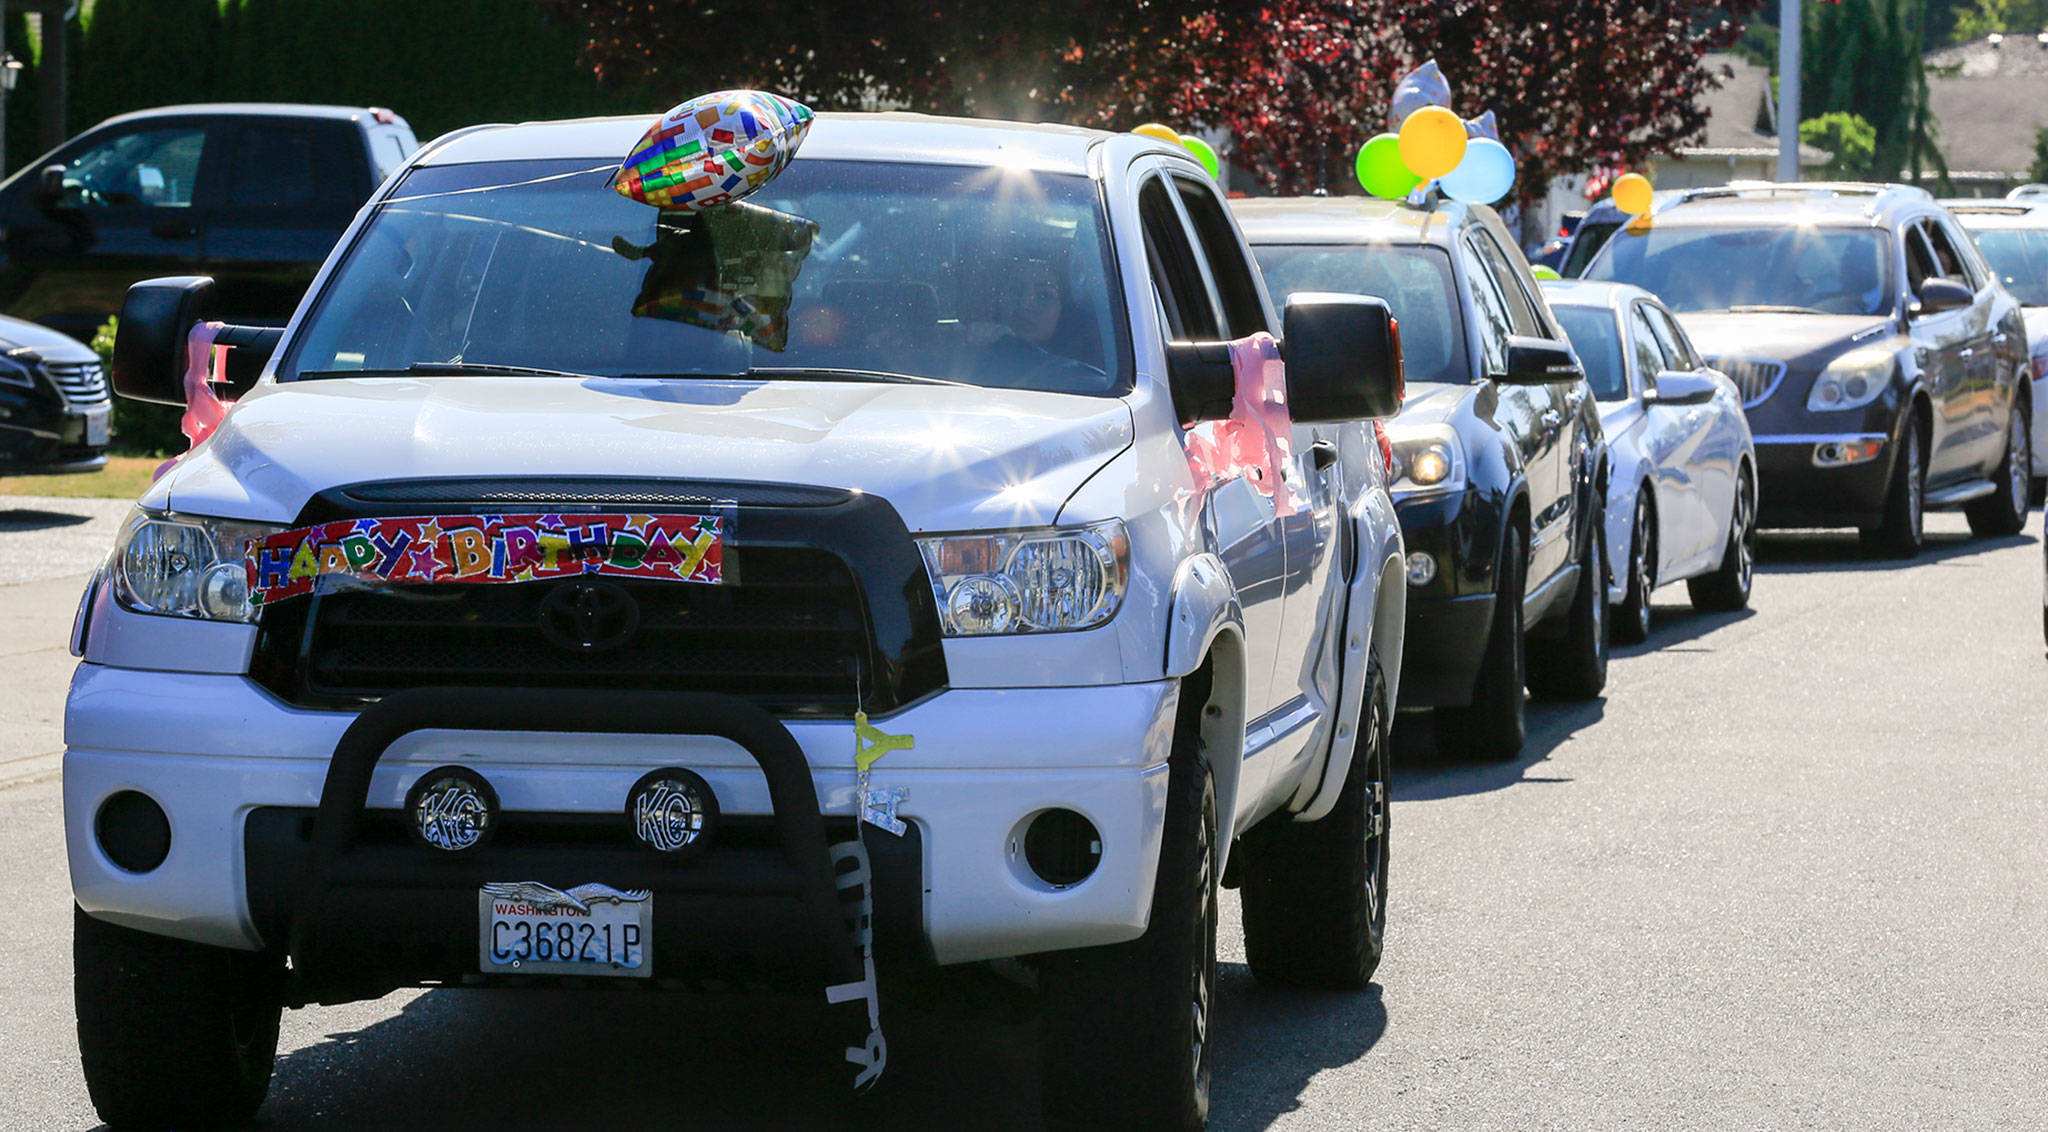 Cars line up to give Essie Klopfenstine drive-by birthday wishes and presents Tuesday afternoon in Marysville. (Kevin Clark / The Herald)